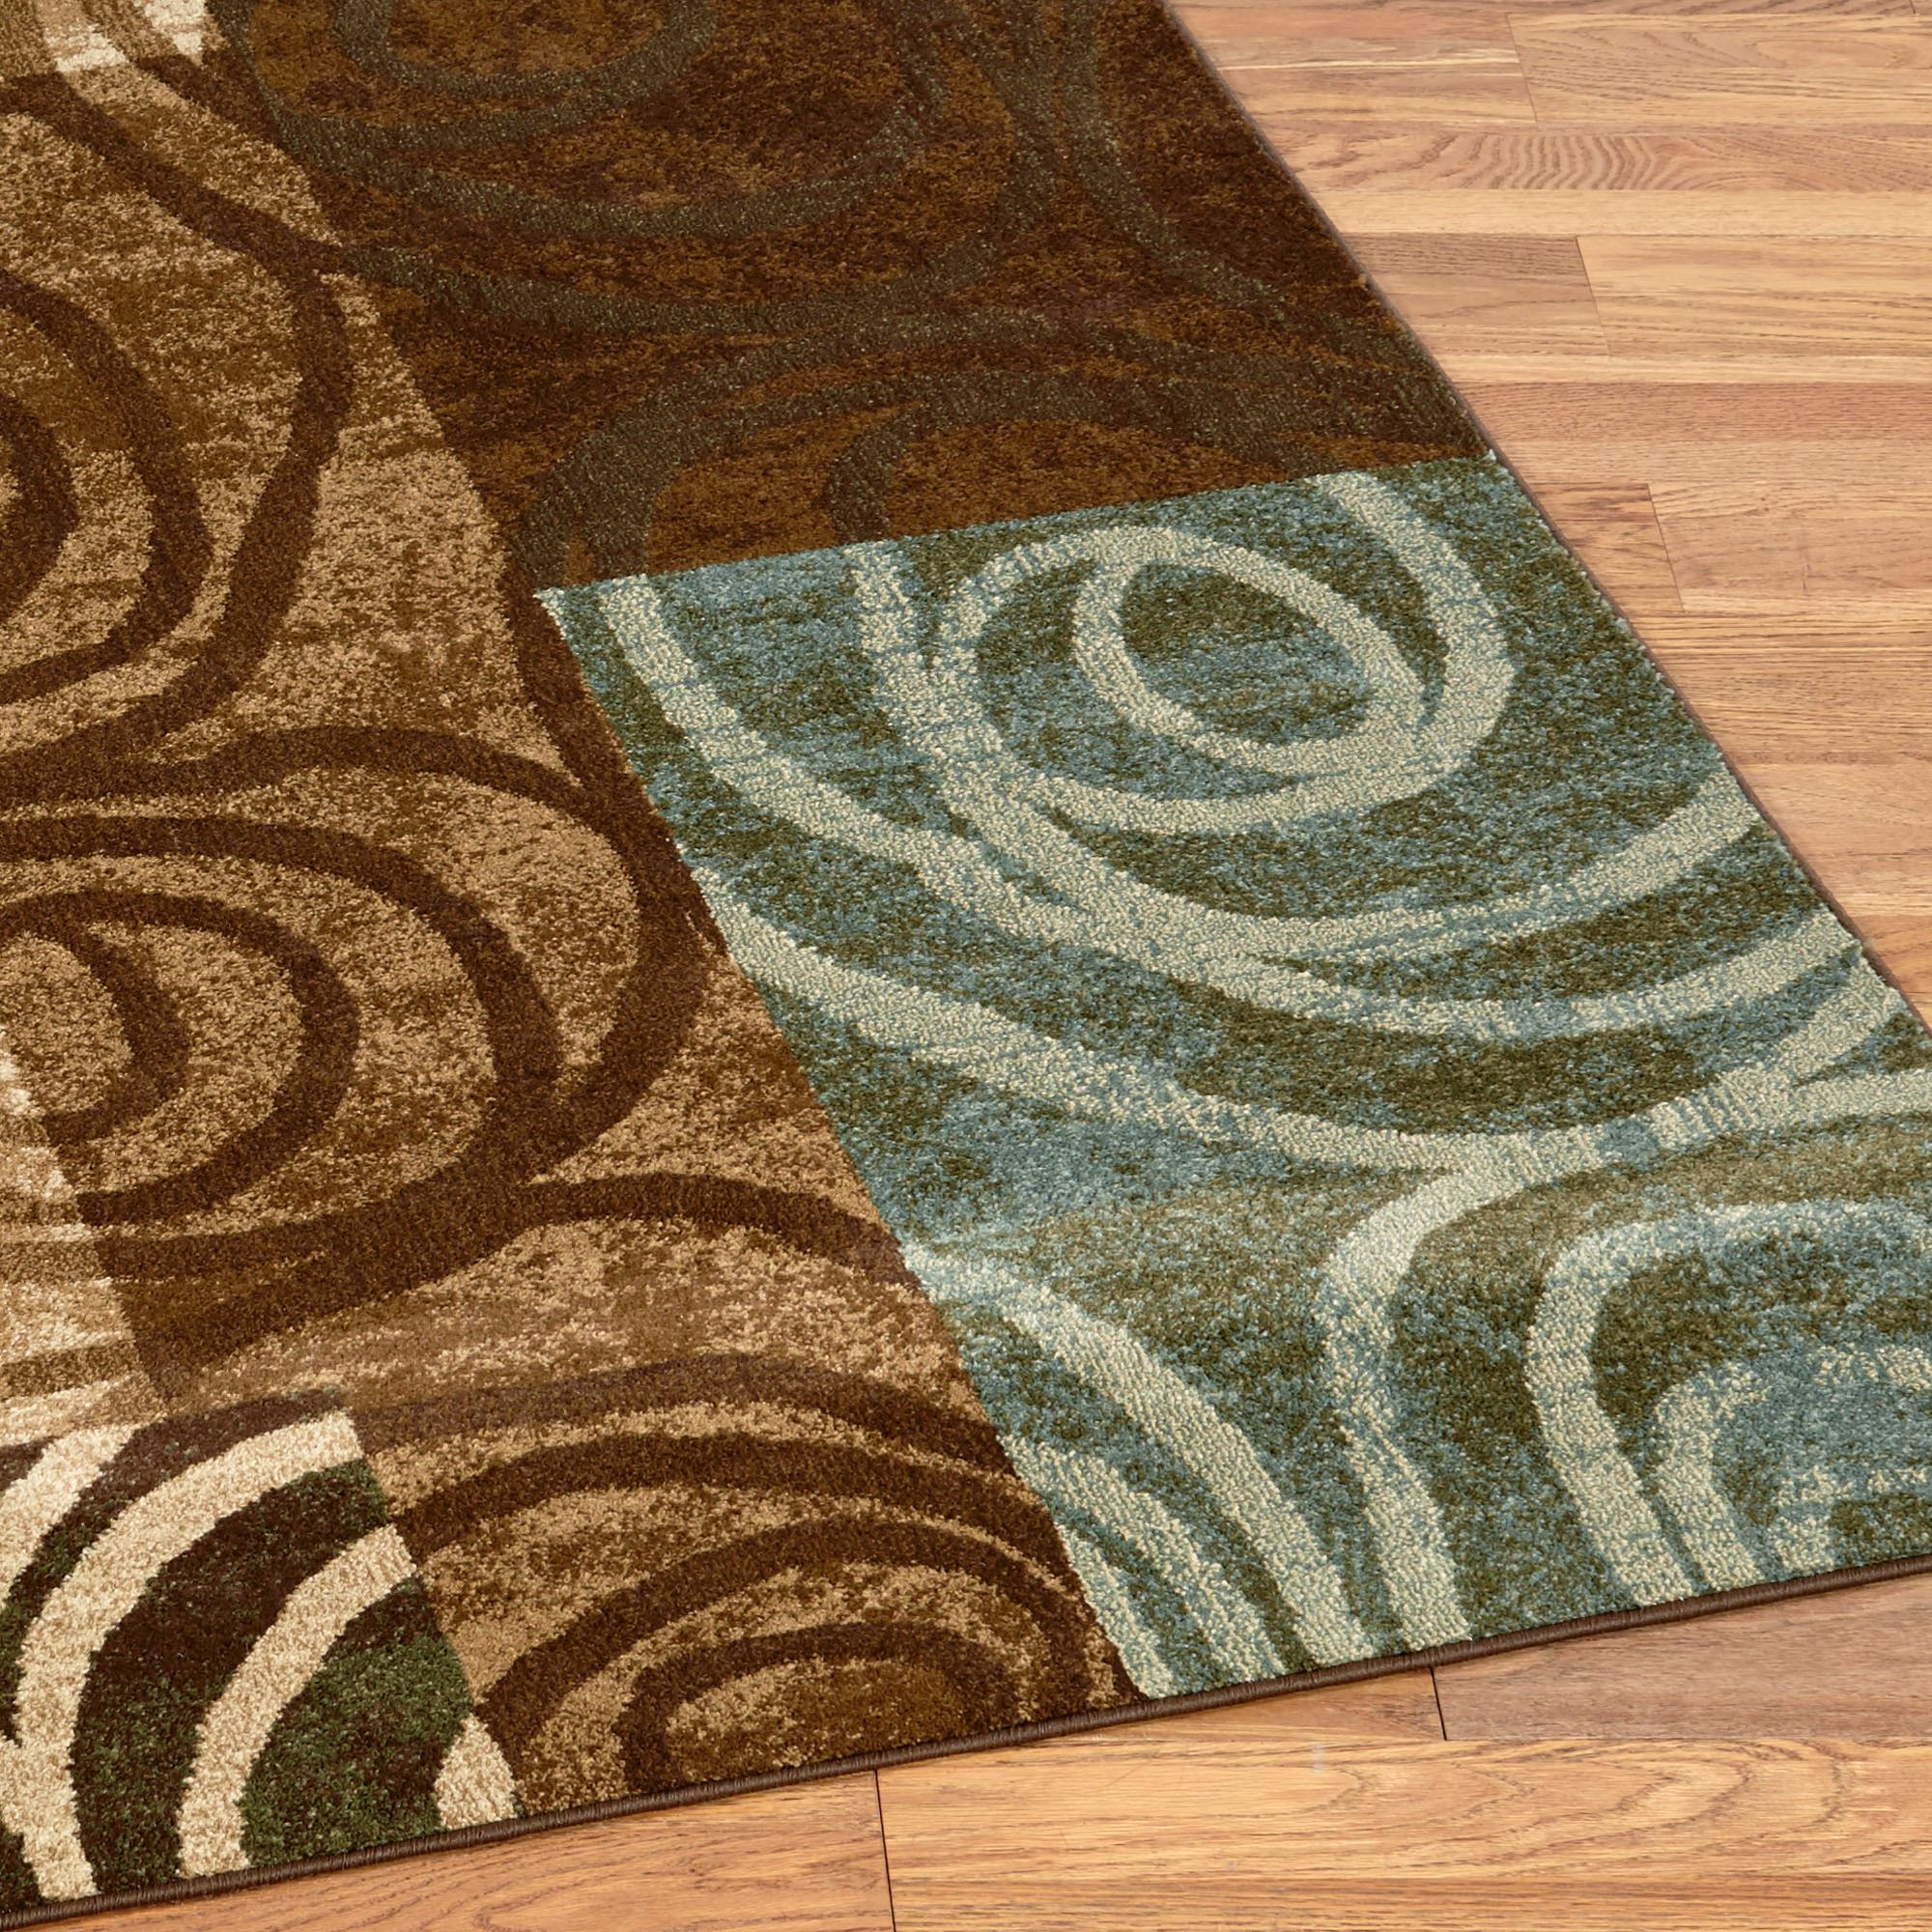 Blocked Spiral Pet Friendly Stain Resistant Area Rugs